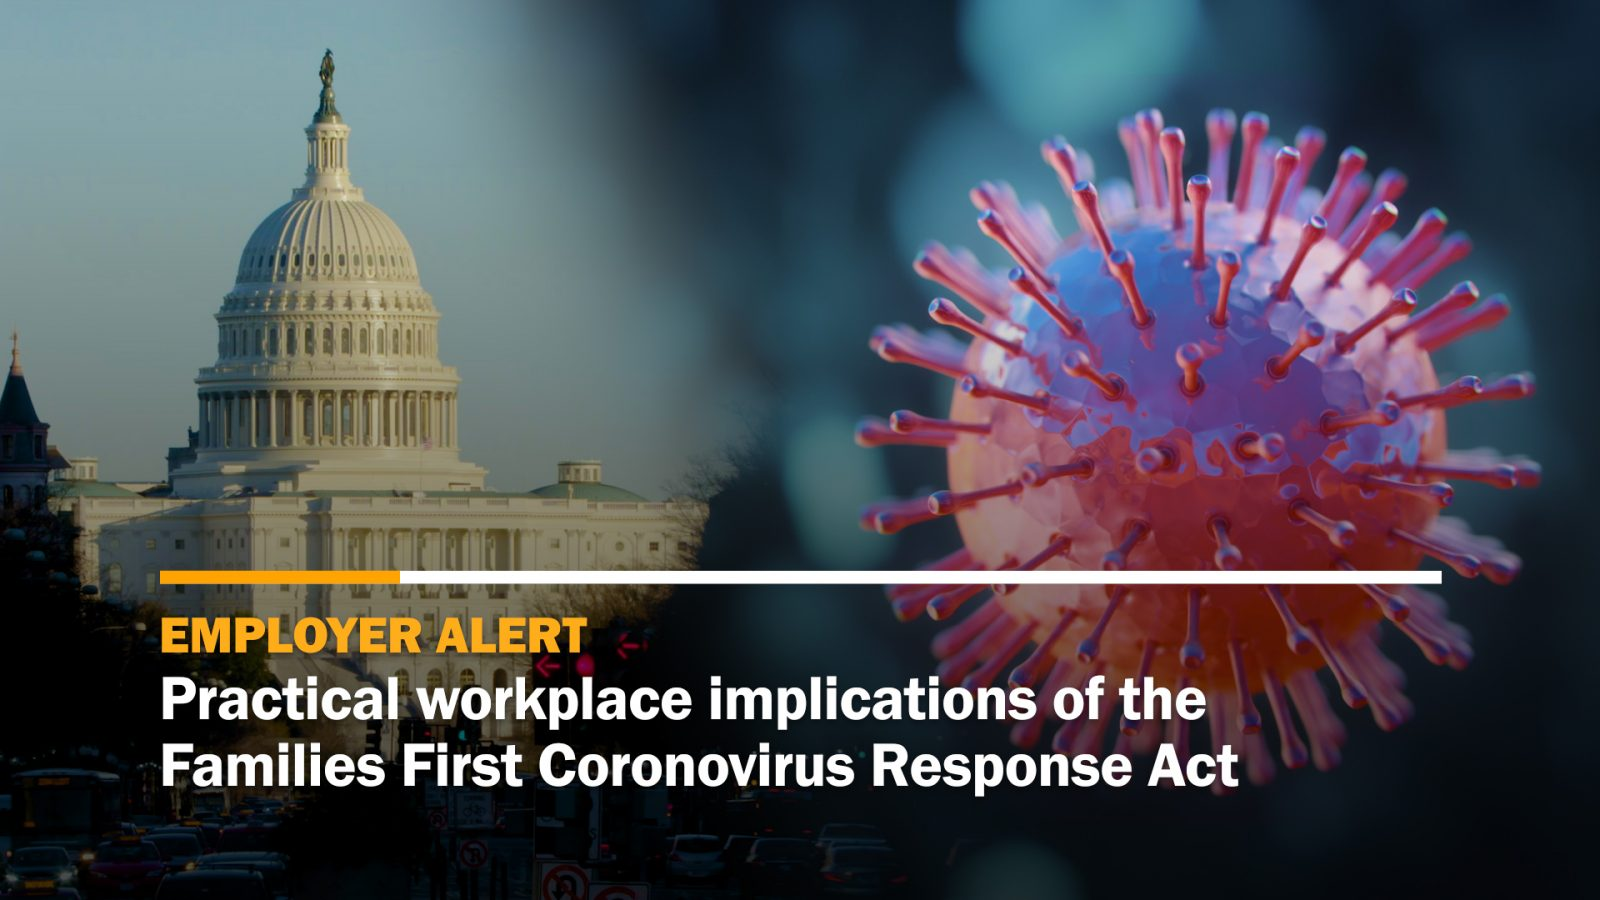 Practical workplace implications of the Families First Coronavirus Response Act